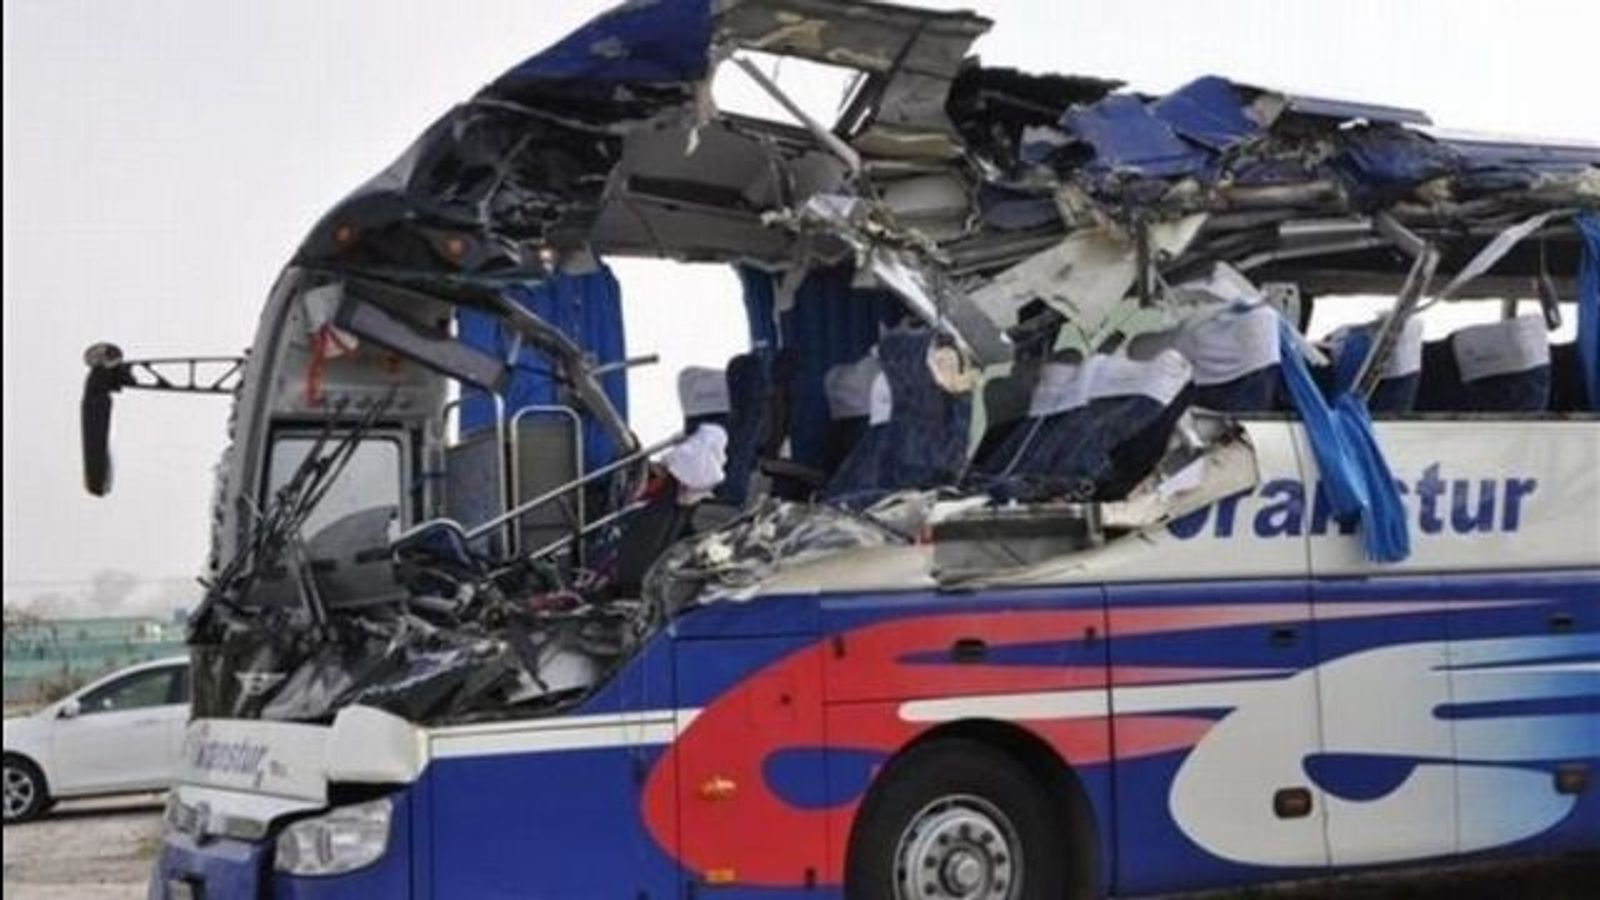 Tourists killed as Cuba bus crashes in wet weather - Brits